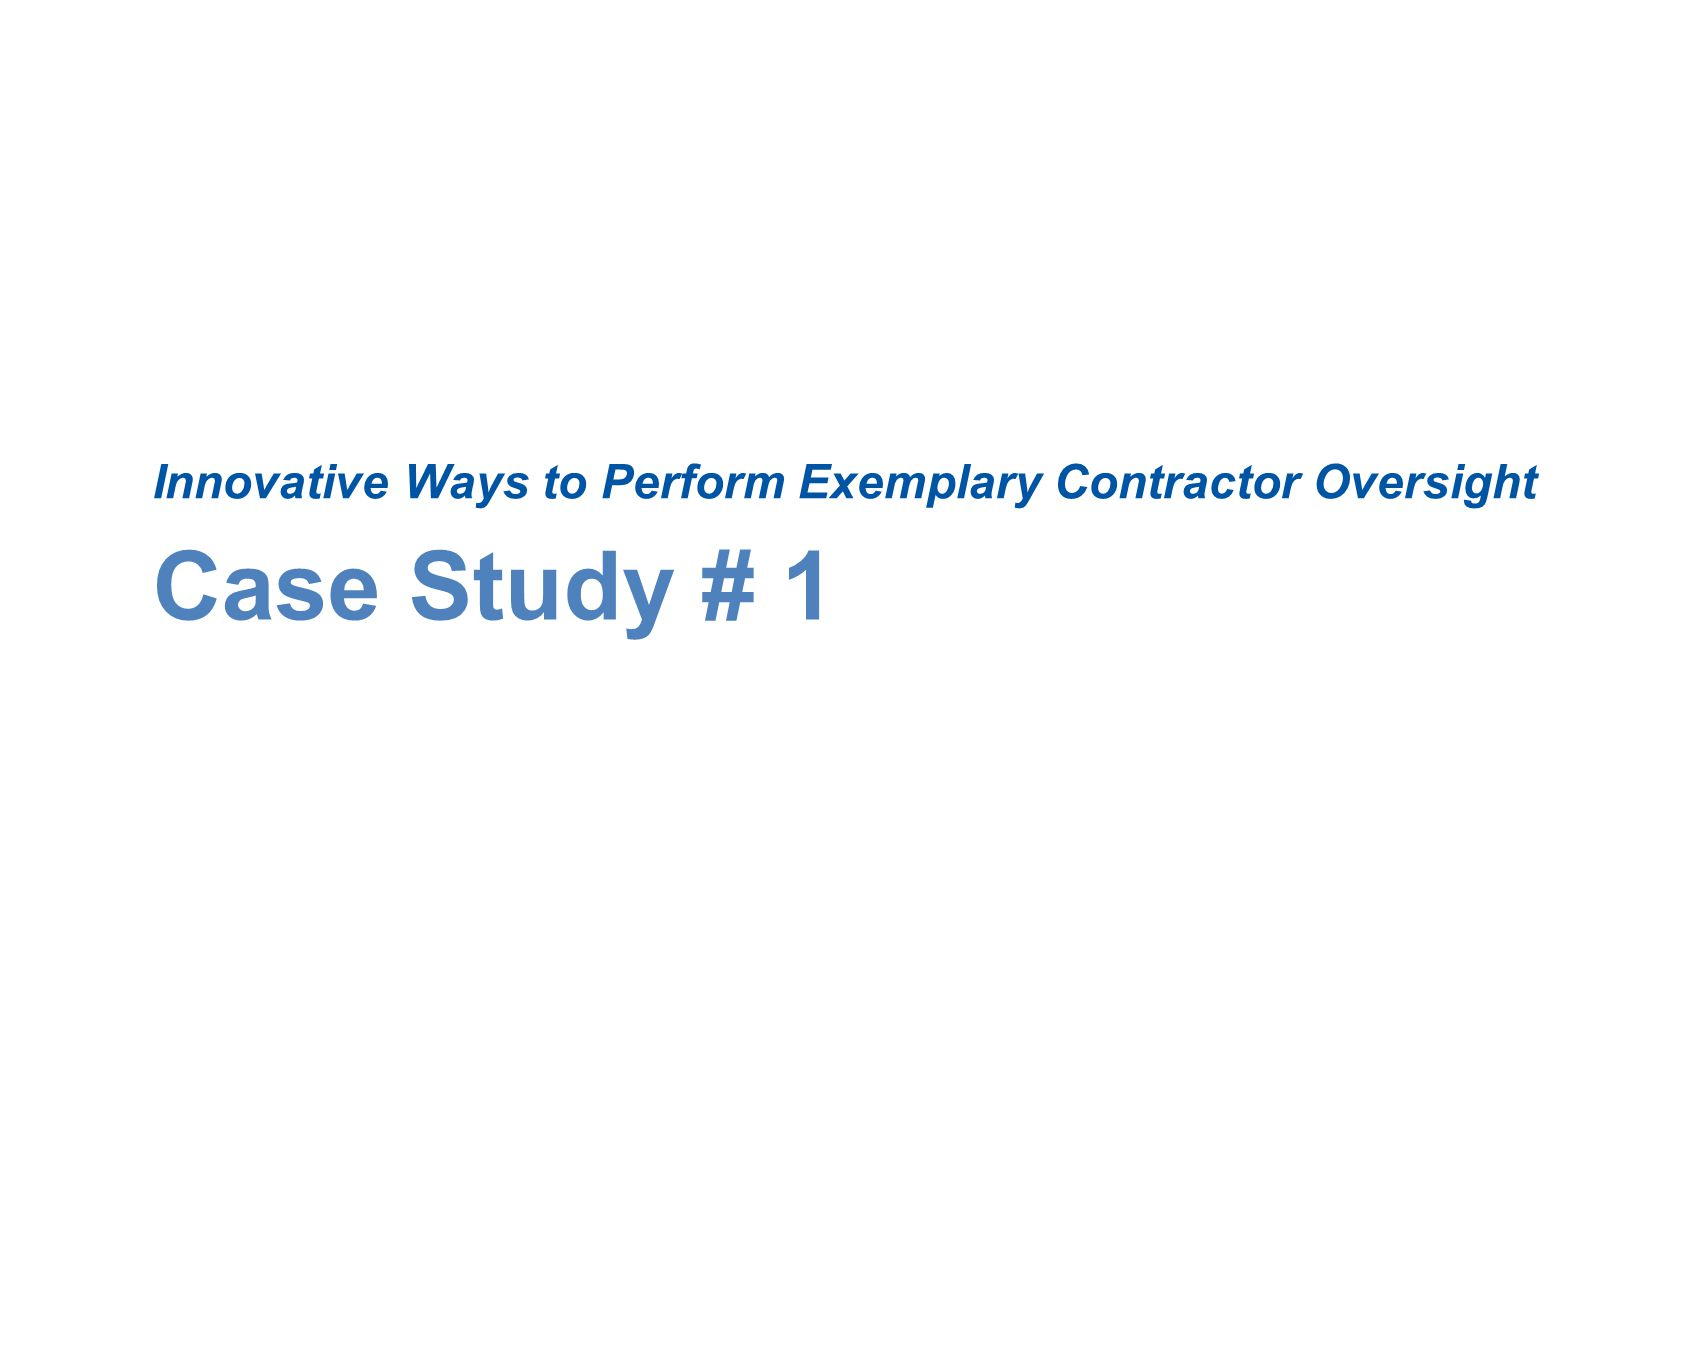 Innovative Ways to Perform Exemplary Contractor Oversight